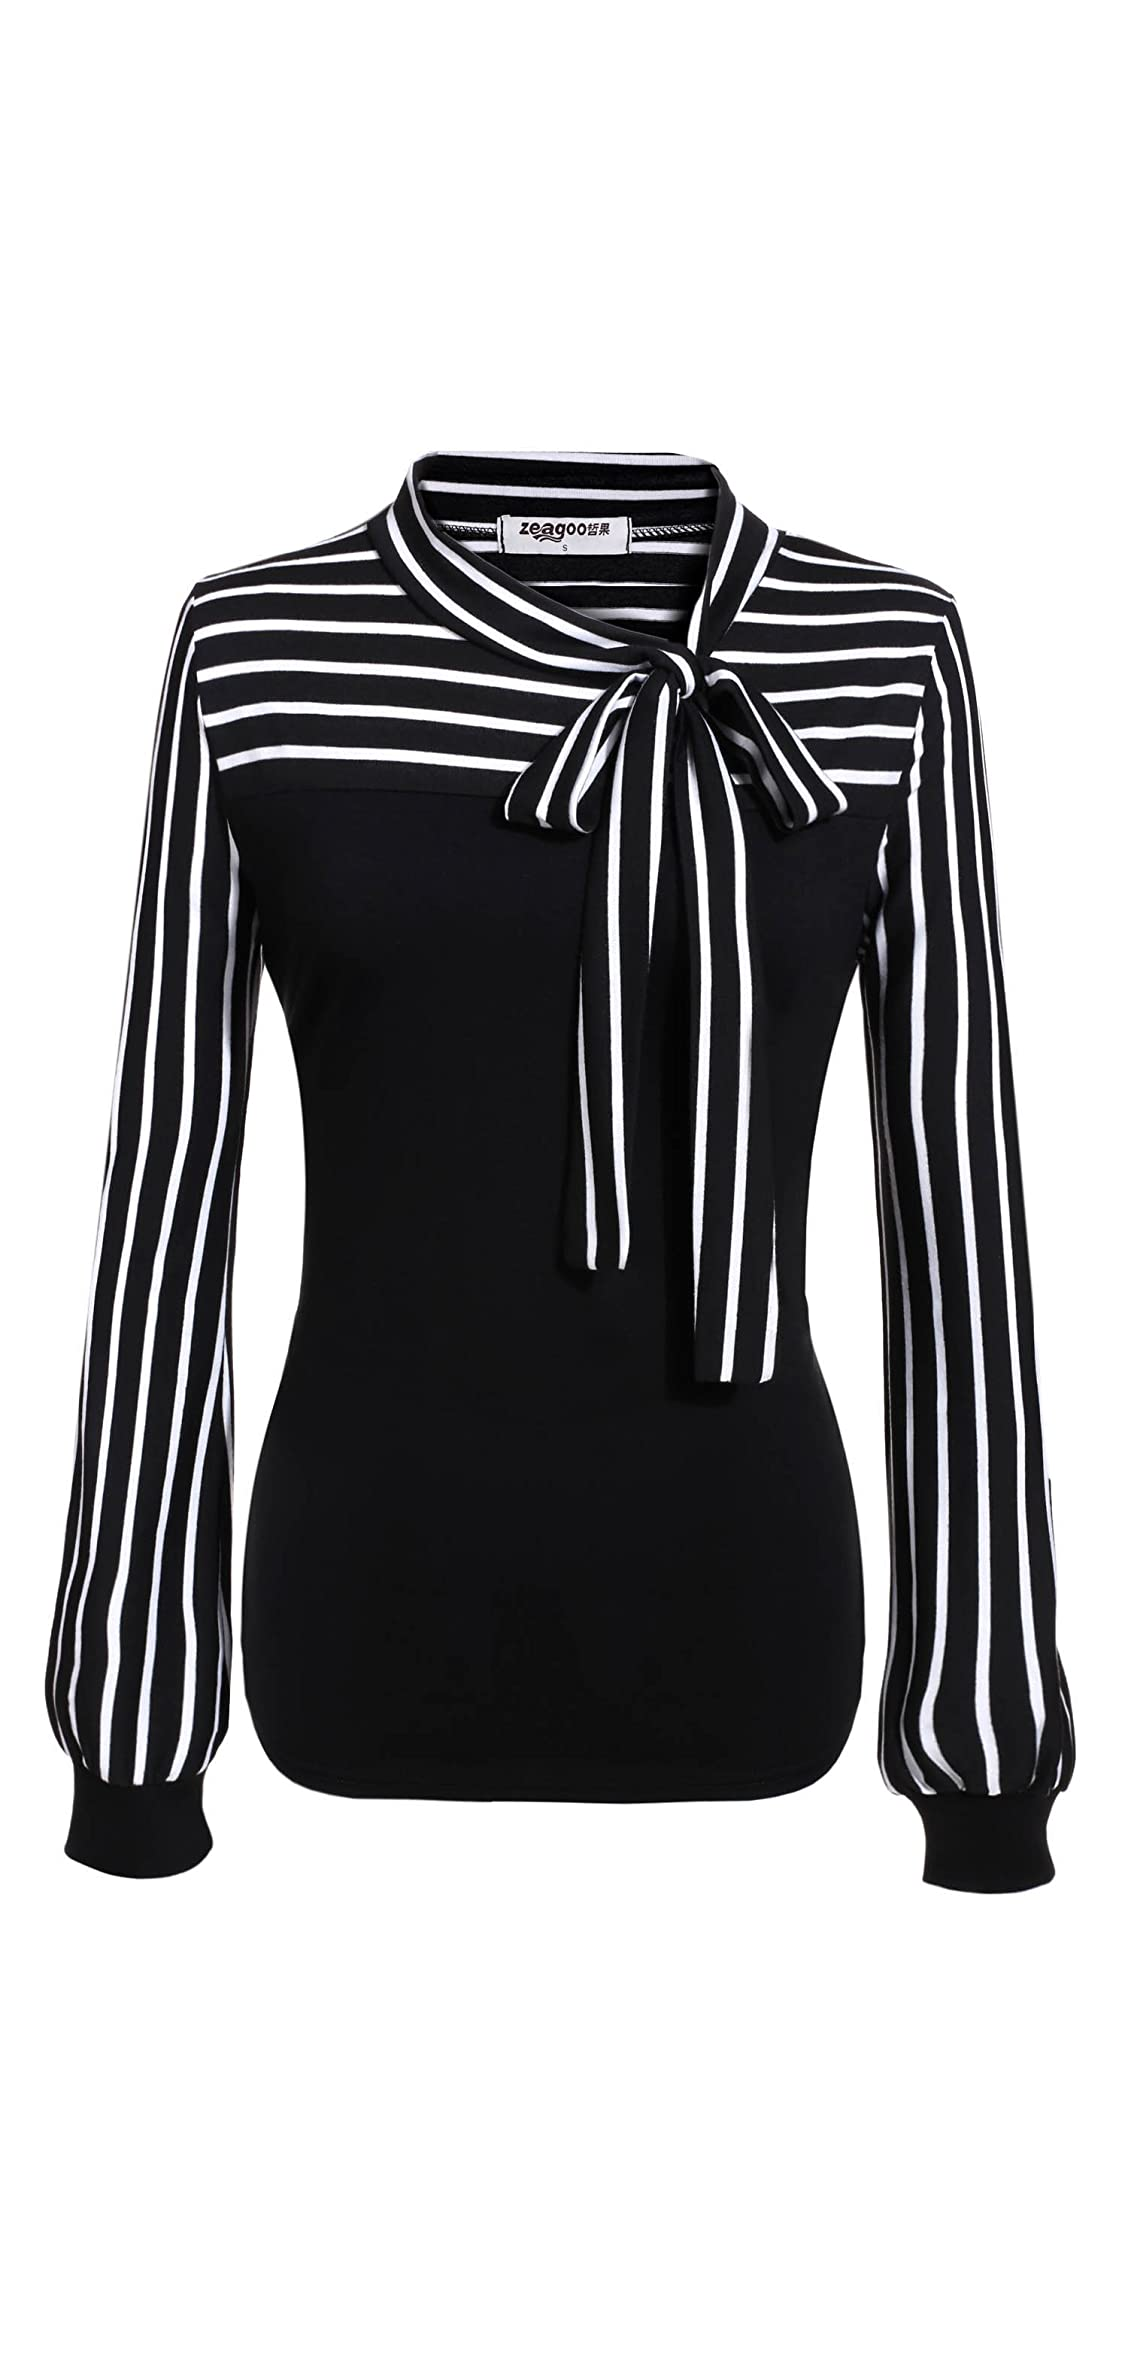 Women's Tie-bow Neck Striped Blouse Long Sleeve Shirt Office